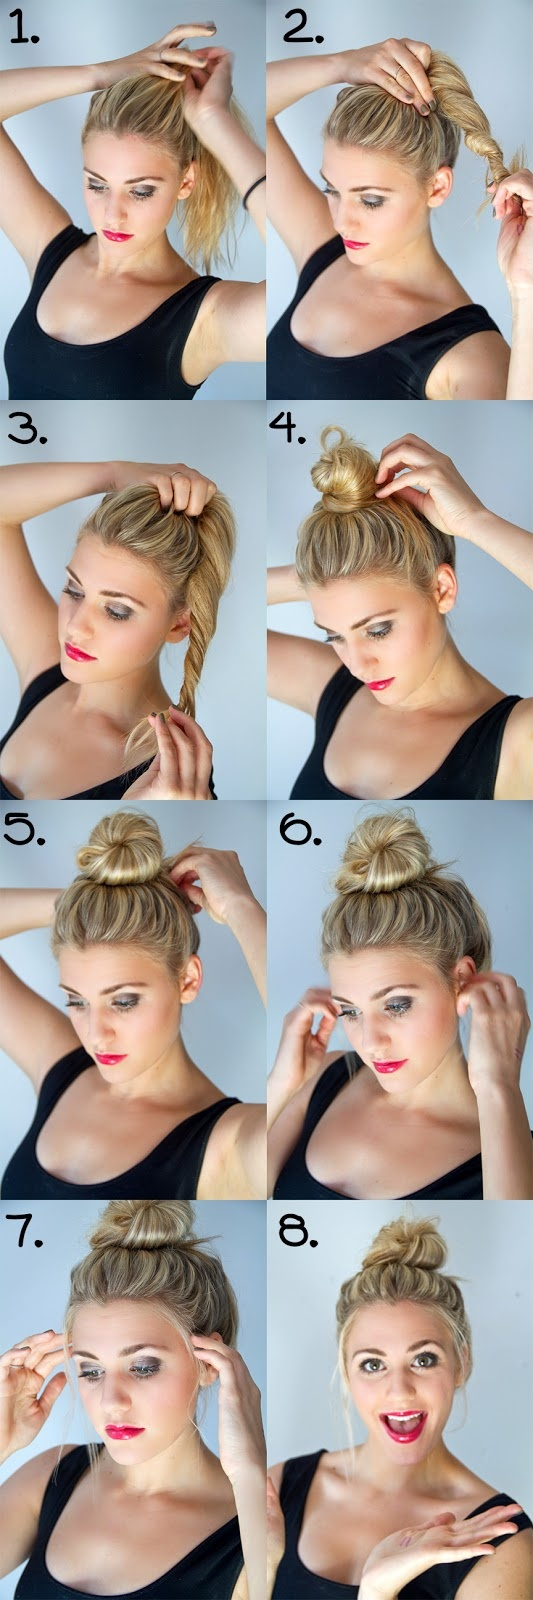 Remarkable Classy To Cute 25 Easy Hairstyles For Long Hair For 2016 Short Hairstyles For Black Women Fulllsitofus